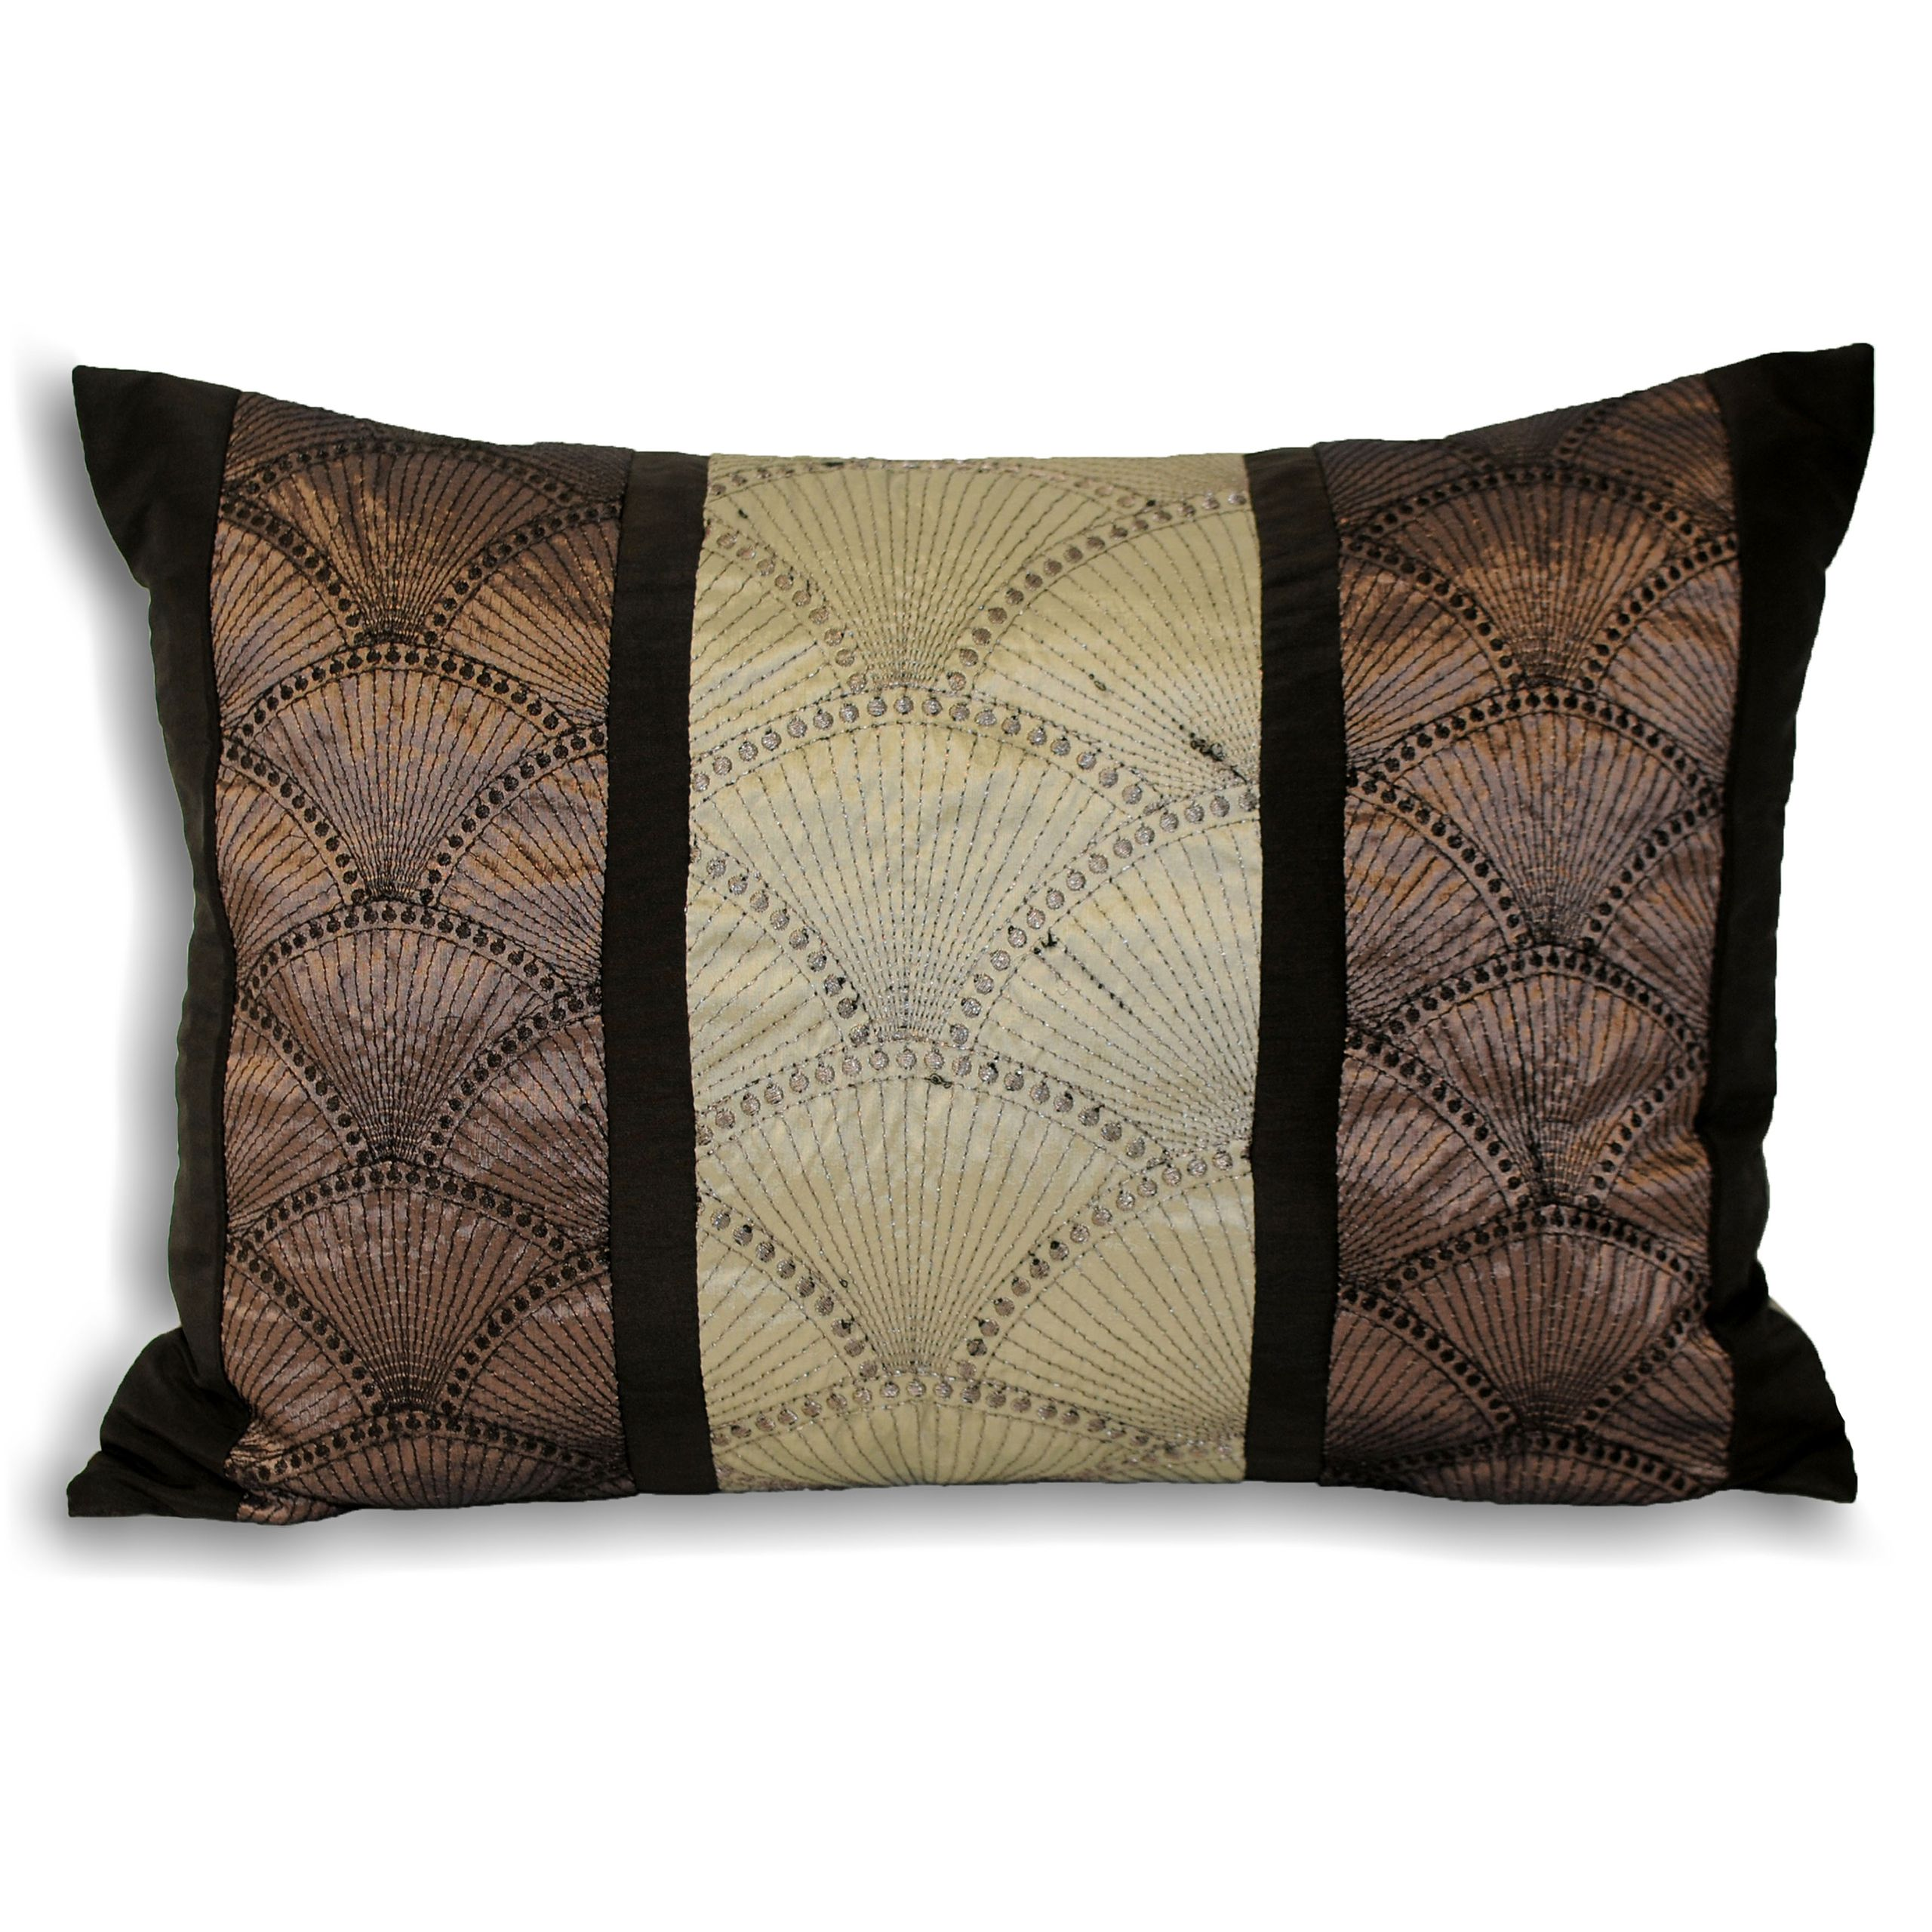 Oyster Polyester Filled Cushion